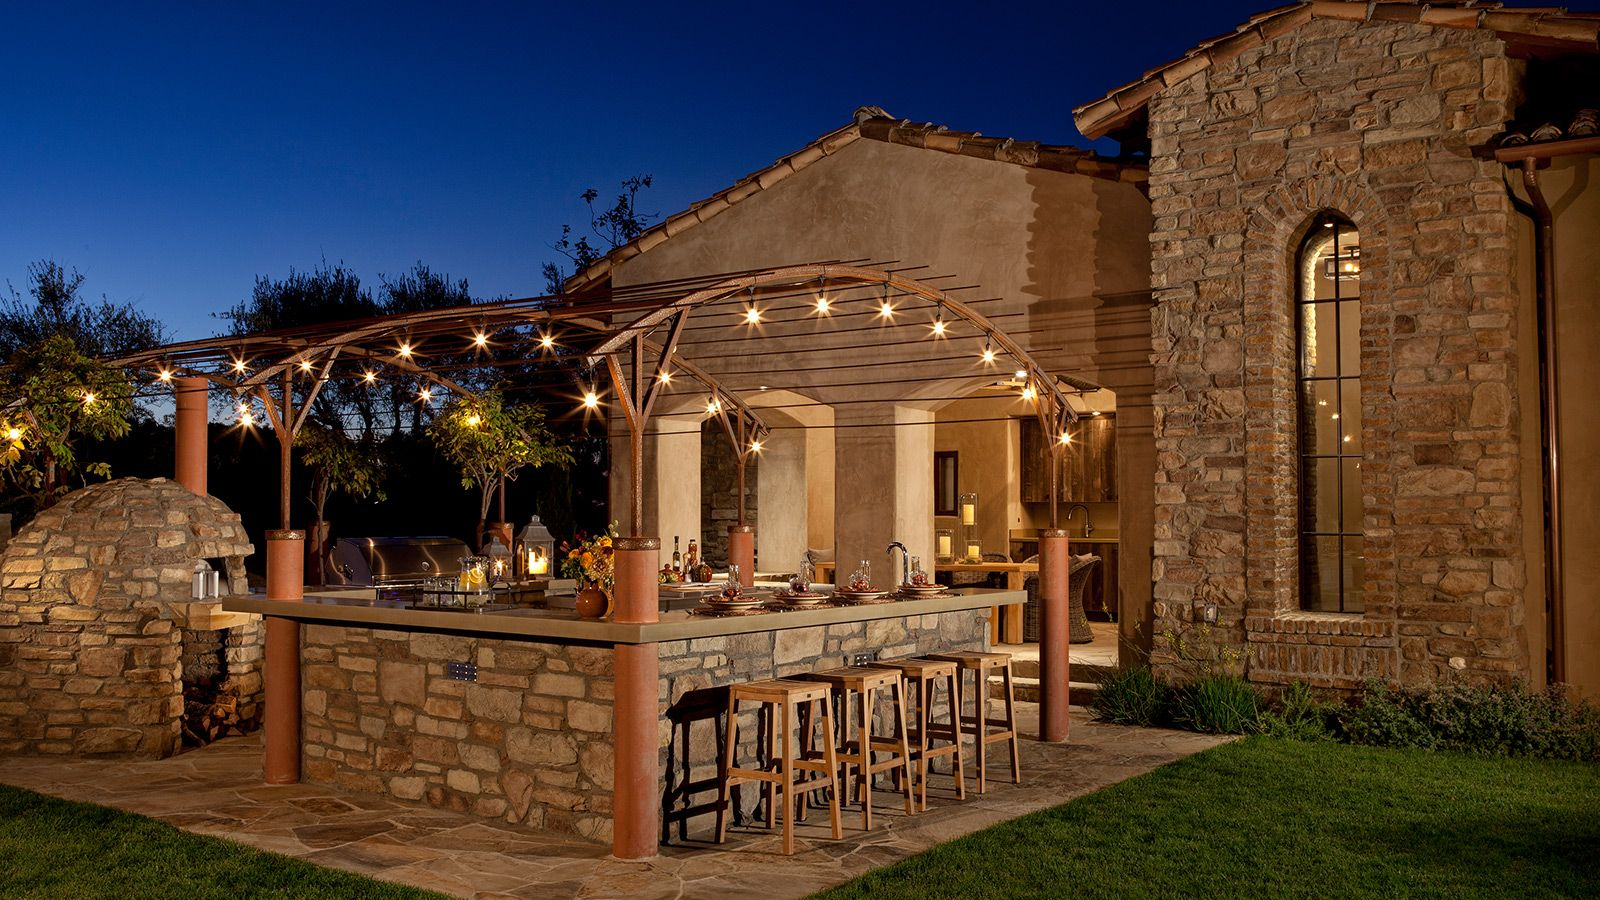 Stone outdoor kitchen pizza oven and patio with lights for Eldorado stone outdoor kitchen